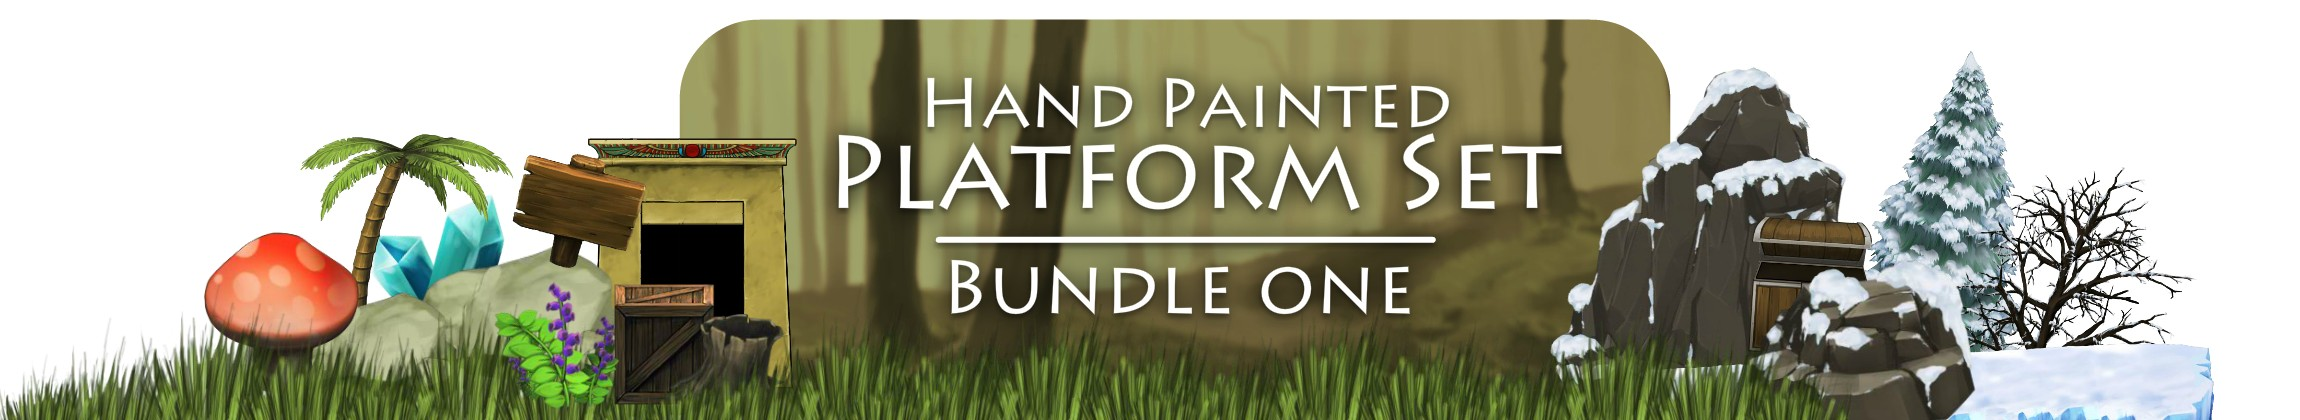 Hand Painted Platform Set Bundle 1